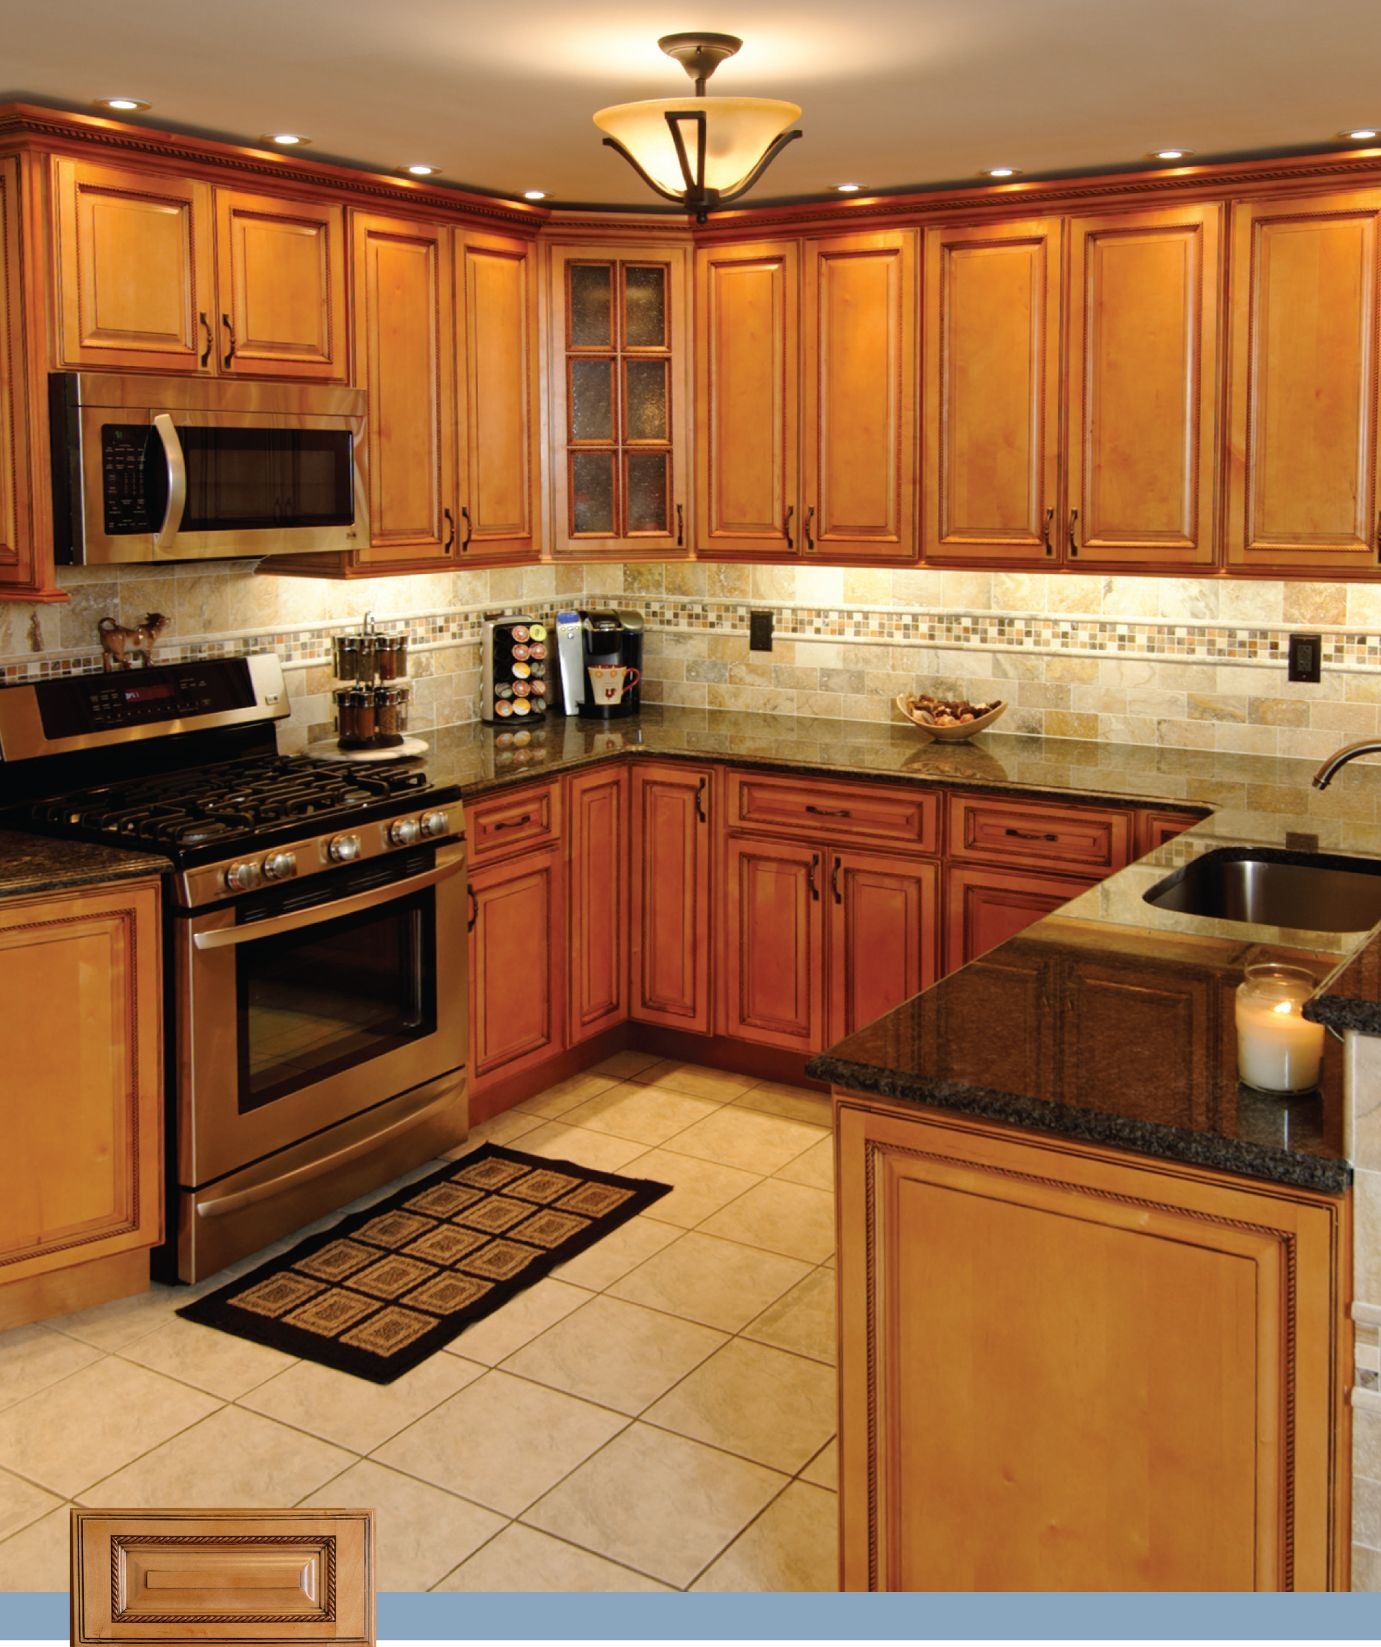 Granite with oak -- what color? Light or dark? - Kitchens Forum ...